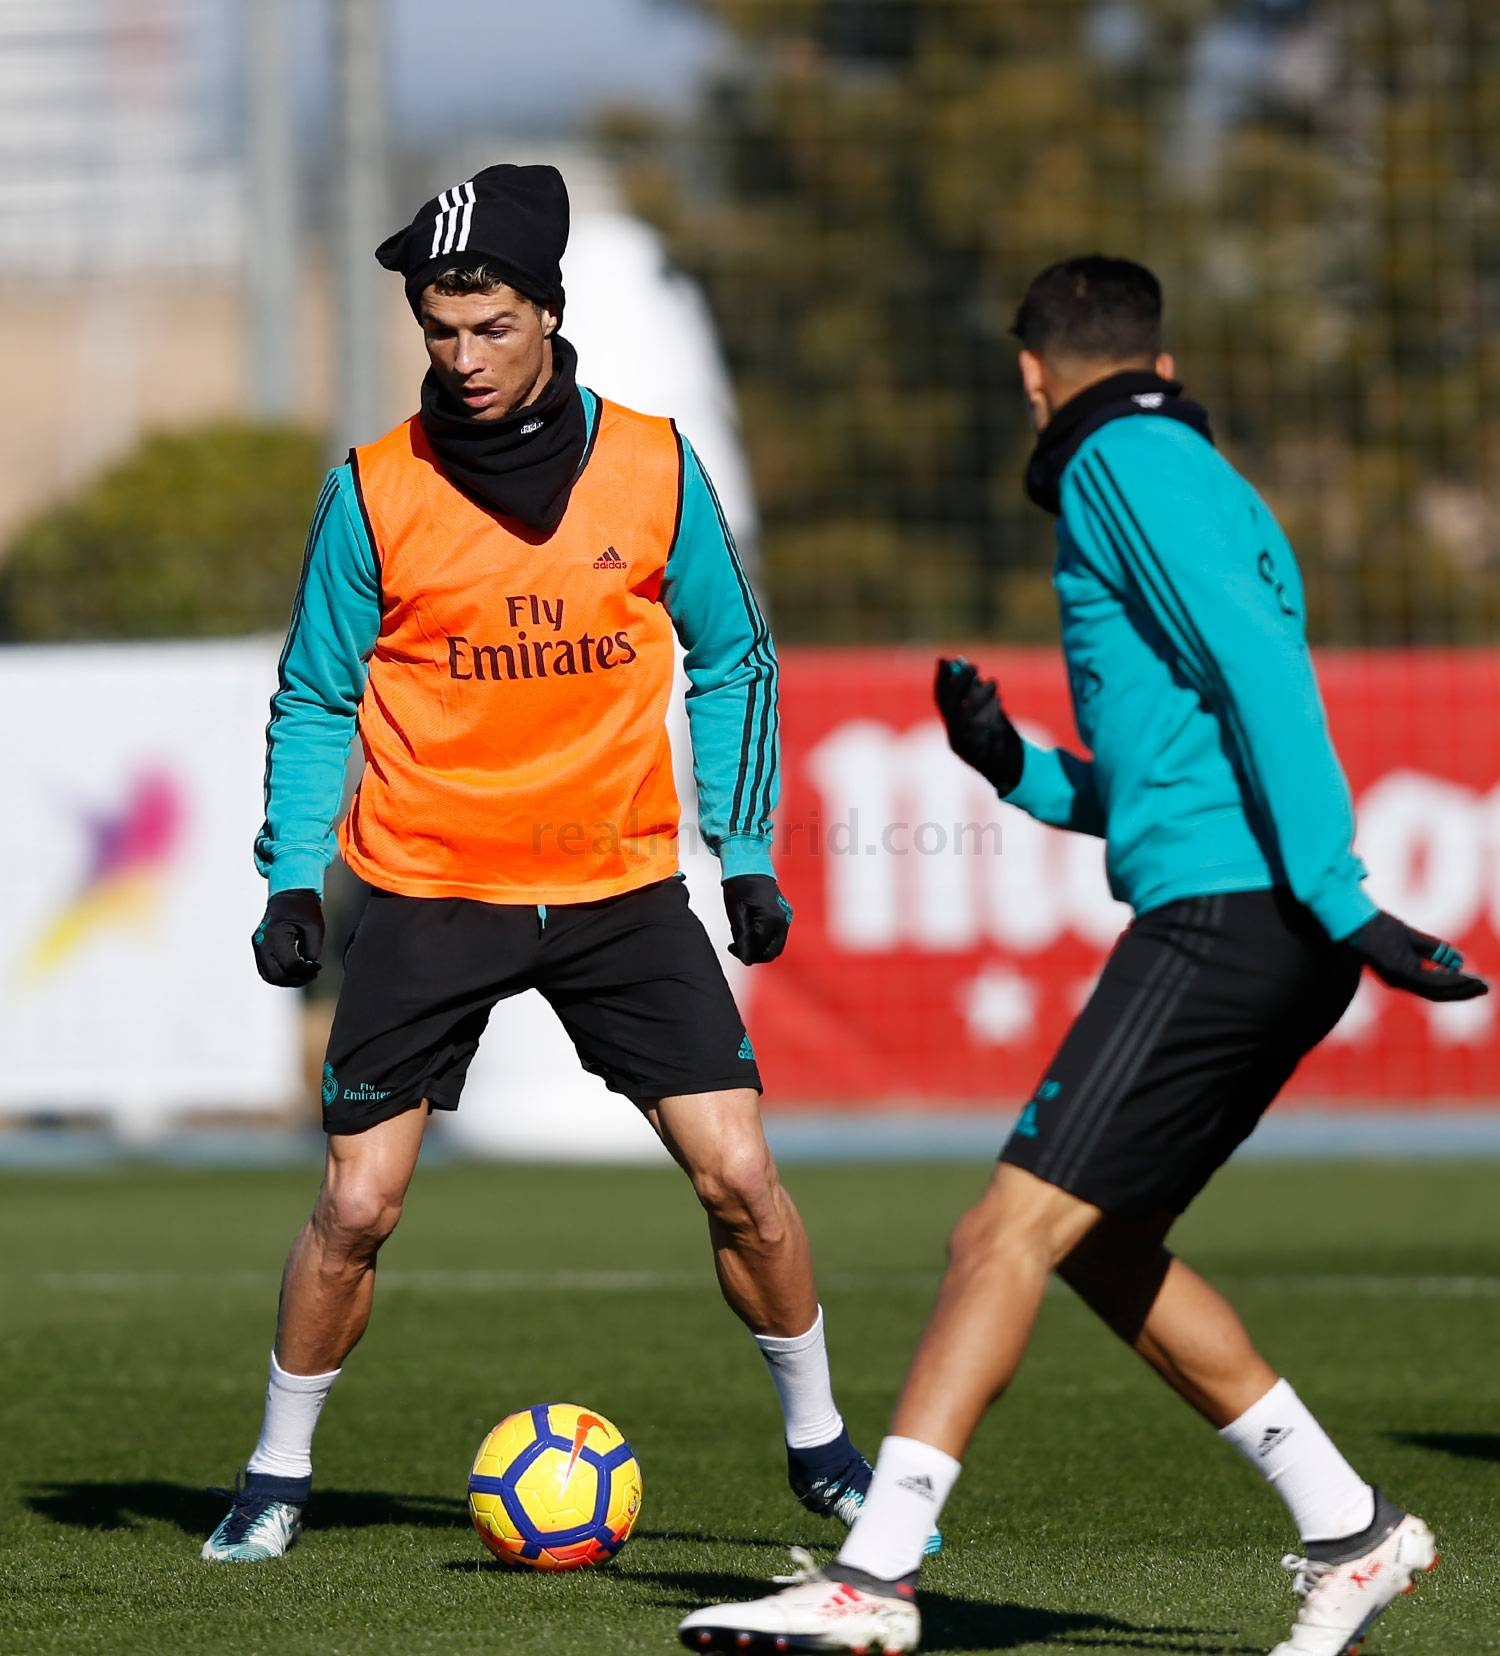 Real Madrid - Entrenamiento del Real Madrid - 02-02-2018